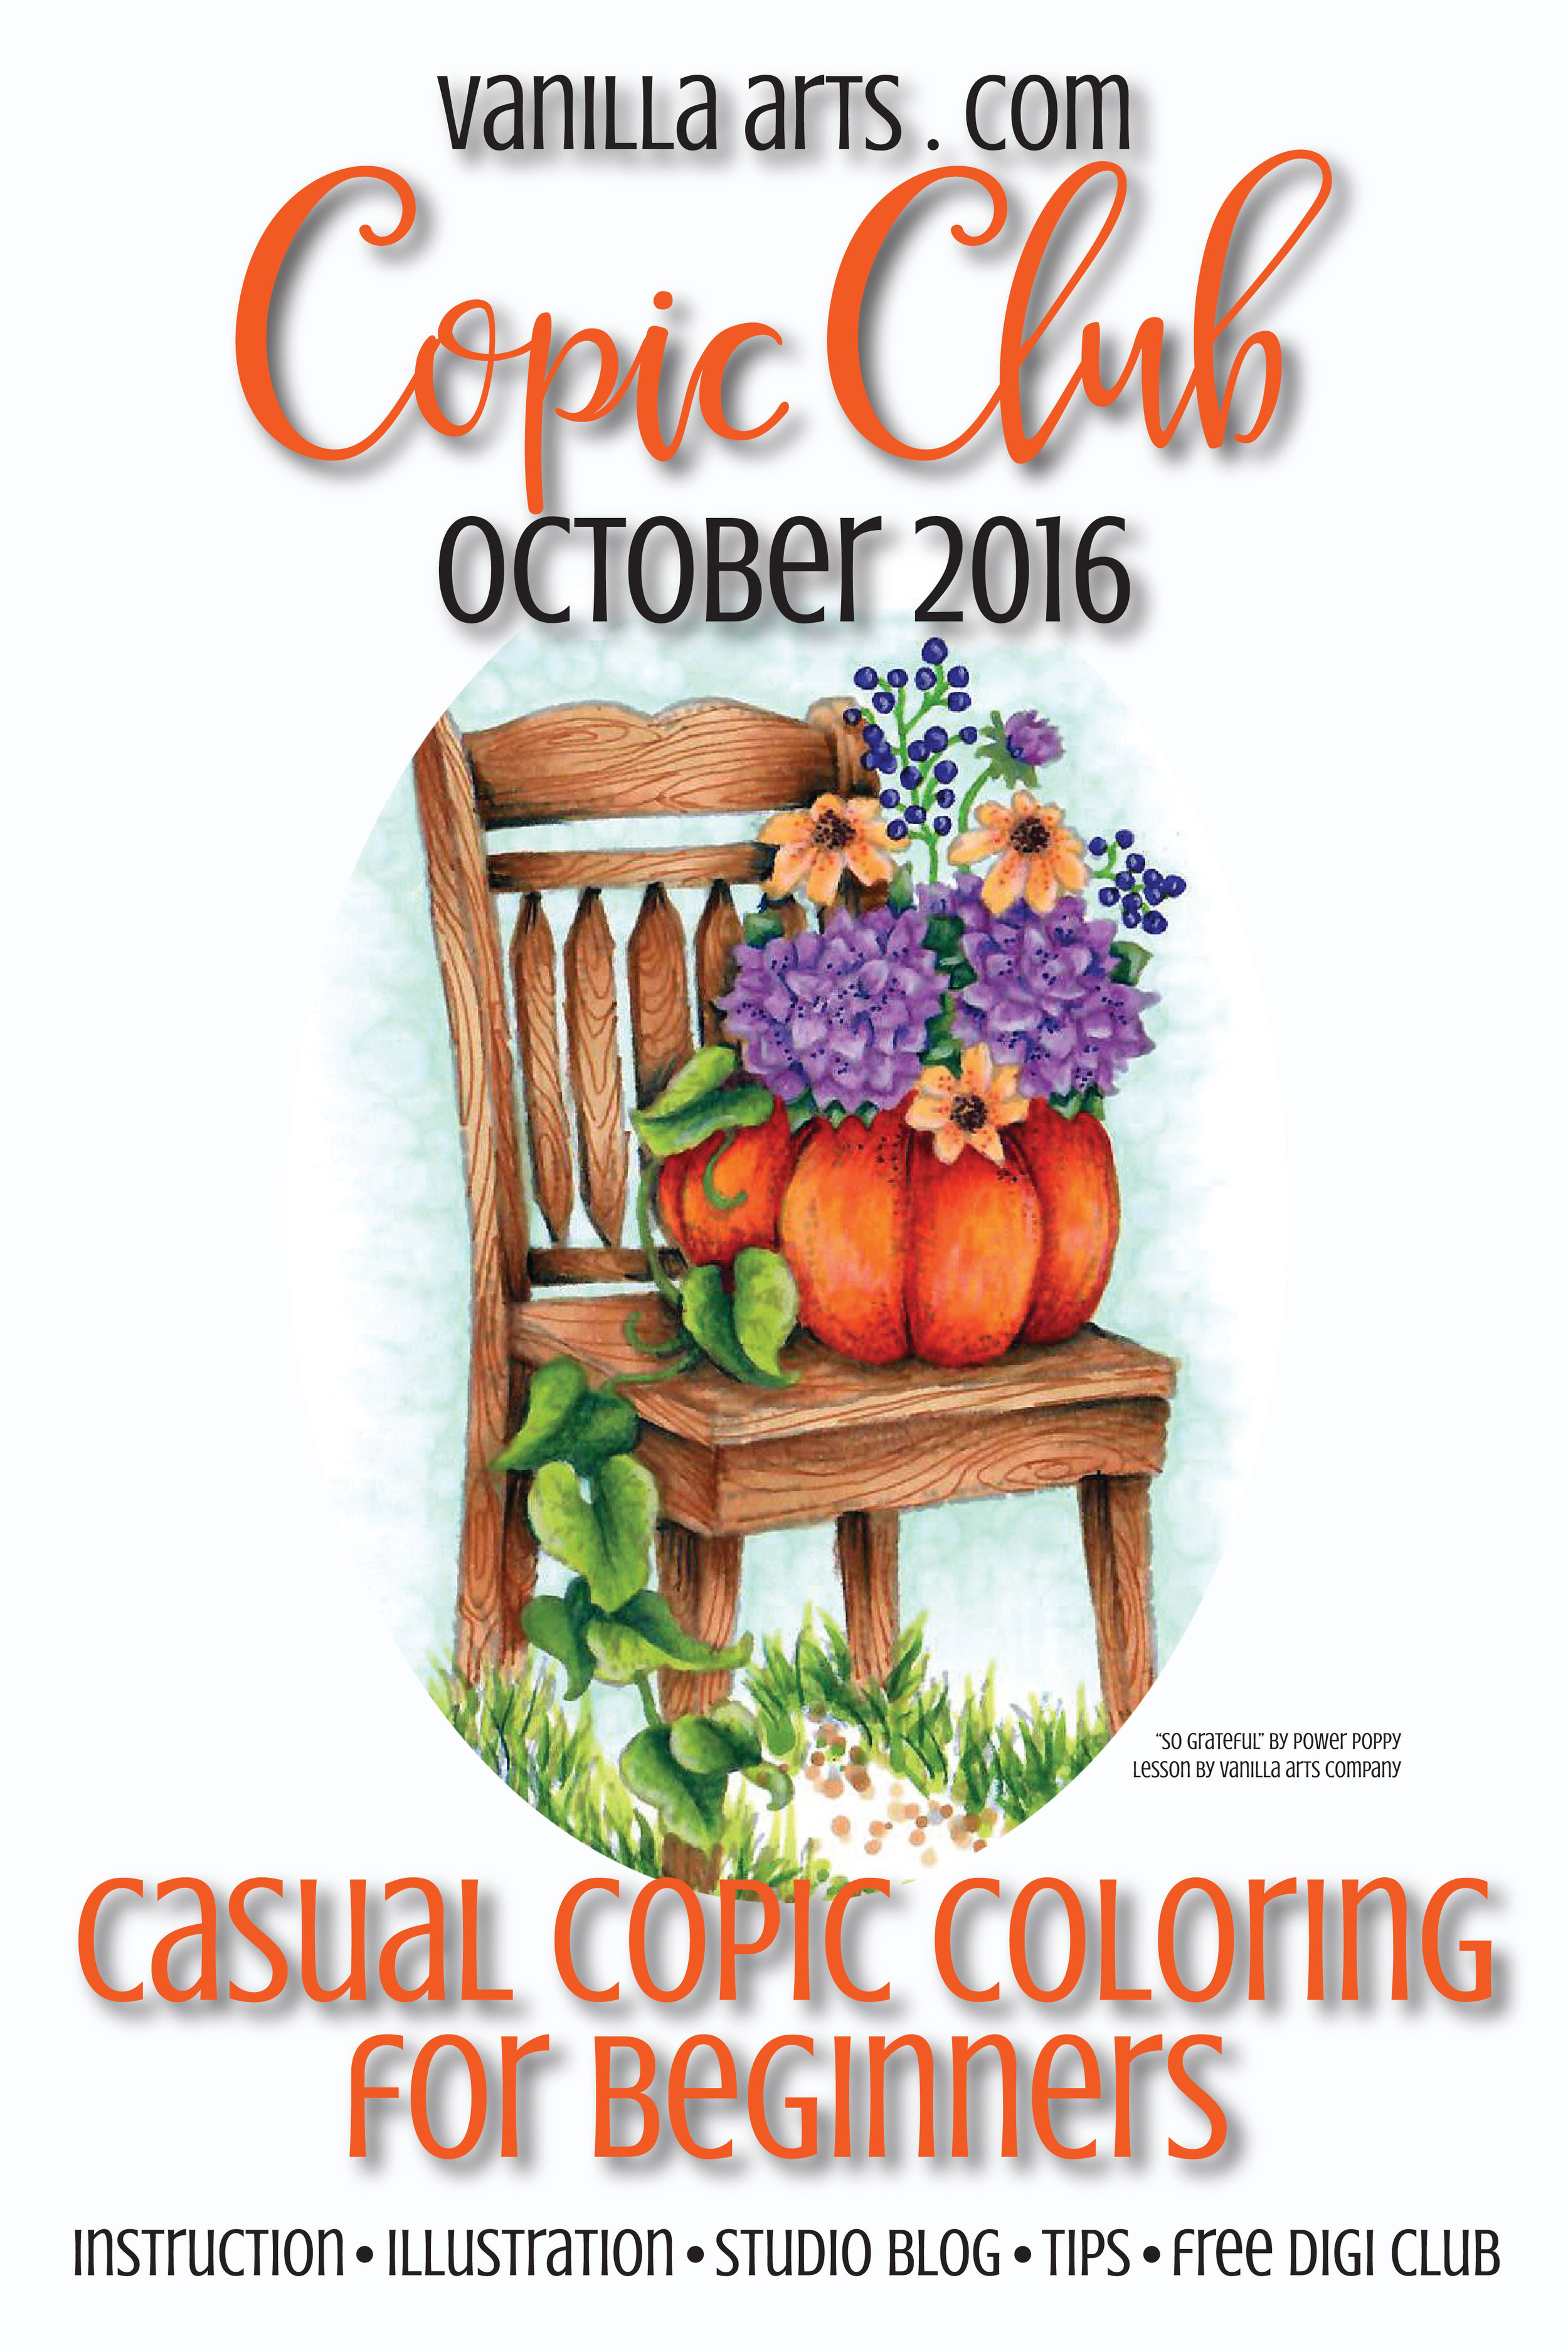 """Copic Club beginner level class. """"So Grateful"""" a lesson in focus and composition for still life stamp images. 